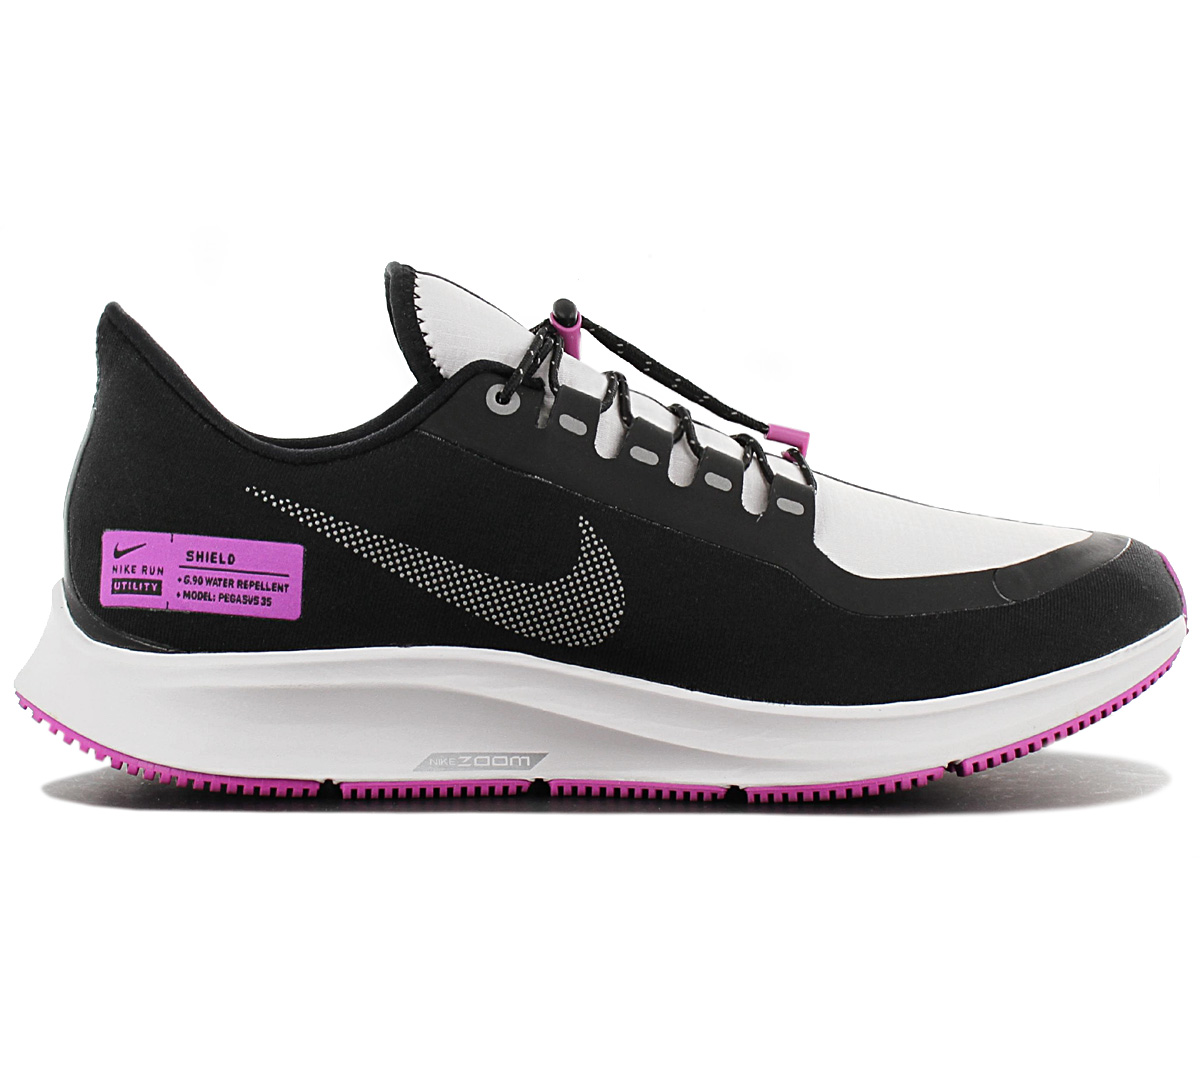 new concept 7d513 8f111 Details about Nike Air Zoom Pegasus 35 Shield NRG Men's Running Shoes  BQ9779-001 Running Shoe